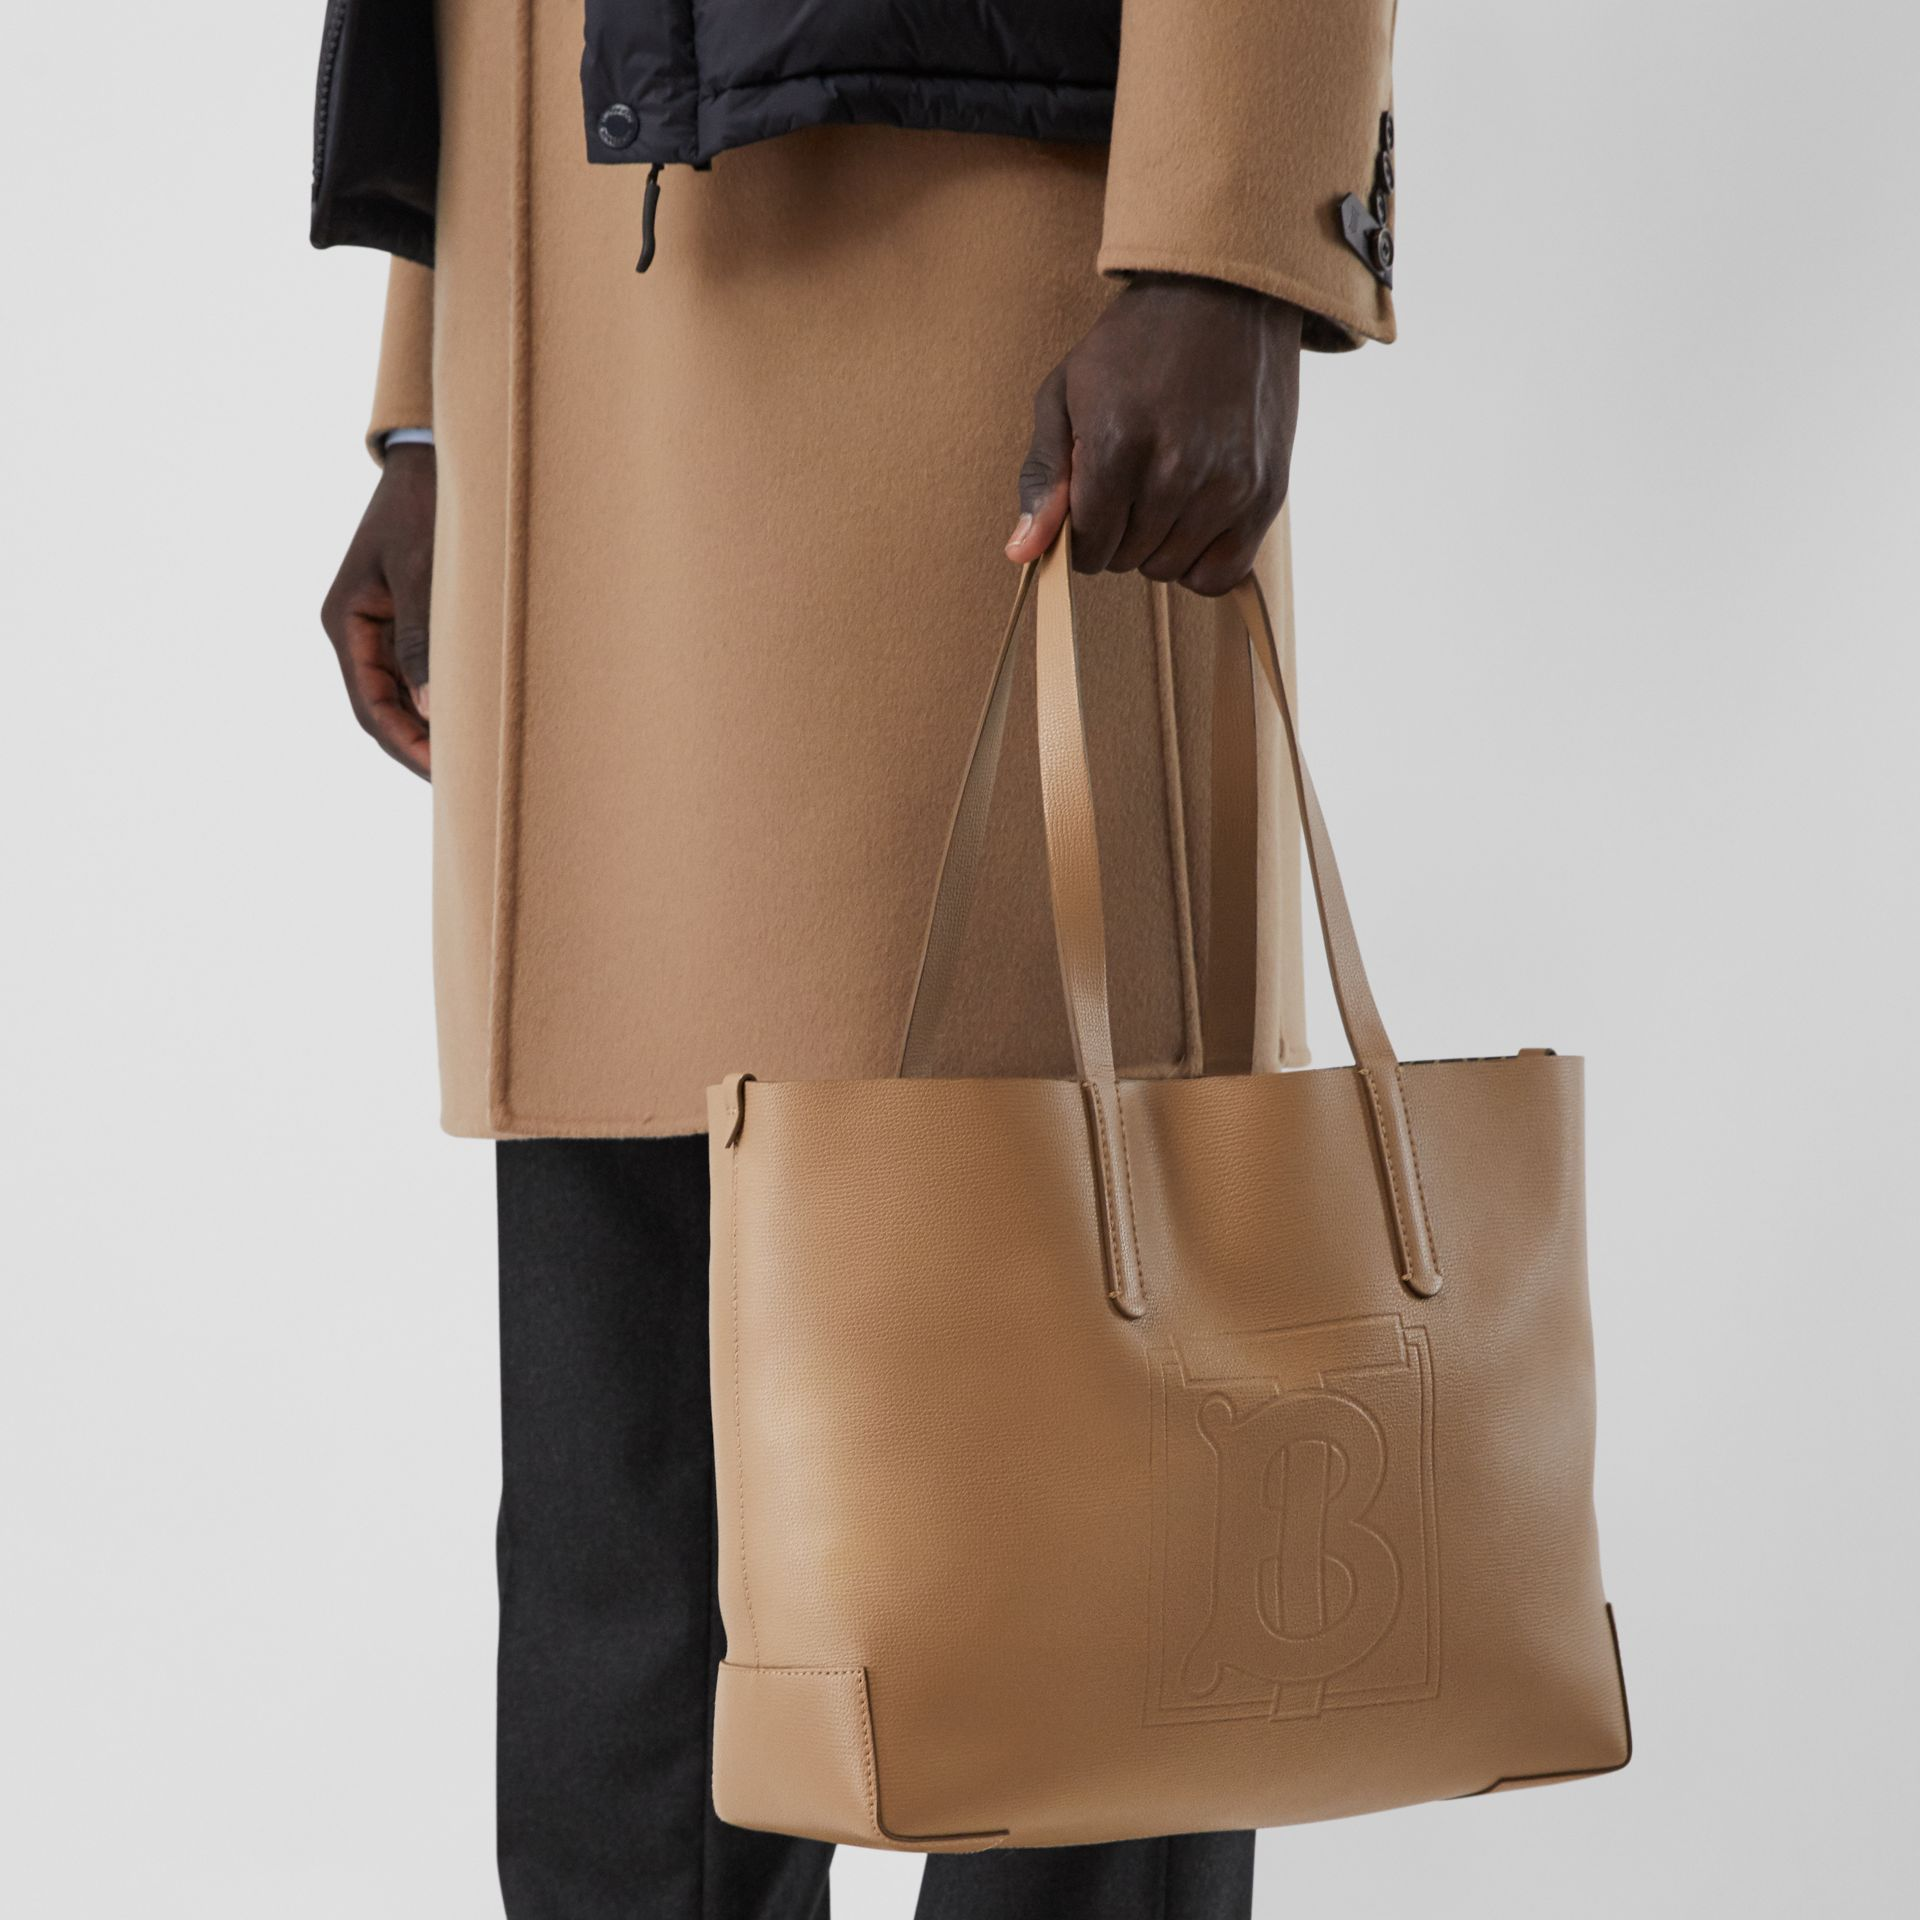 Embossed Monogram Motif Leather Tote in Camel - Women | Burberry United Kingdom - gallery image 3